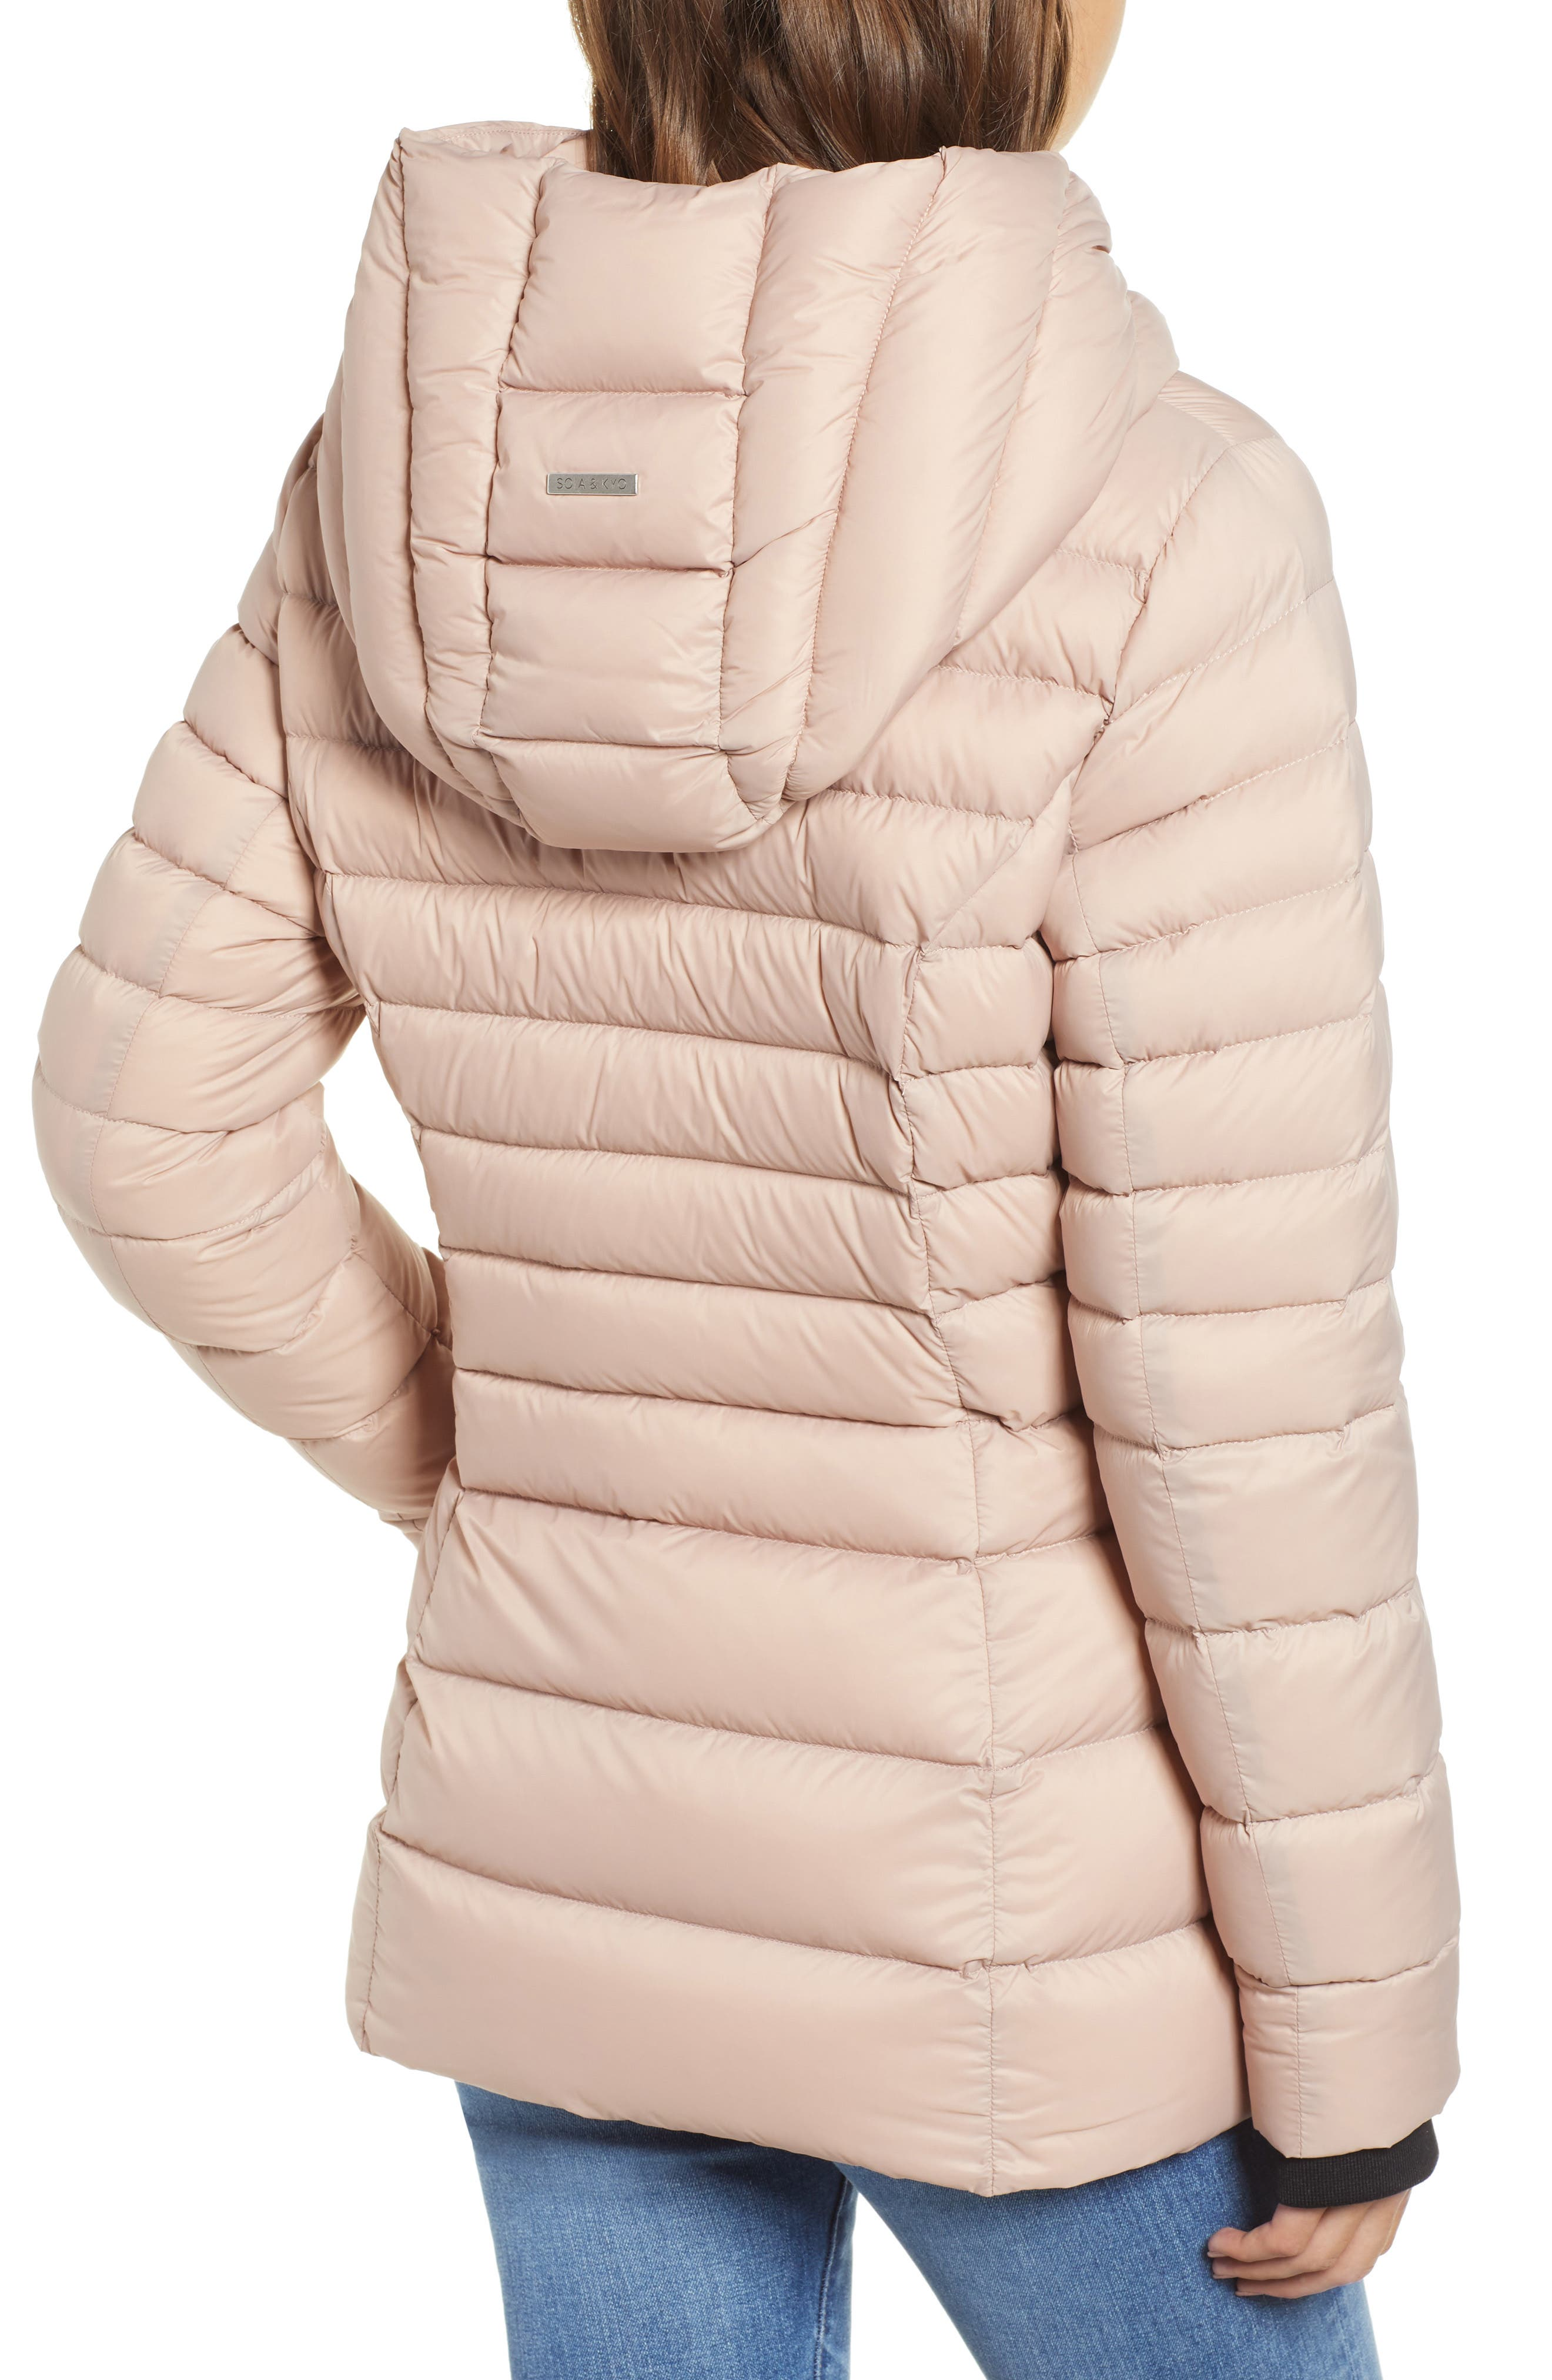 Hooded Down Puffer Jacket,                             Alternate thumbnail 2, color,                             QUARTZ